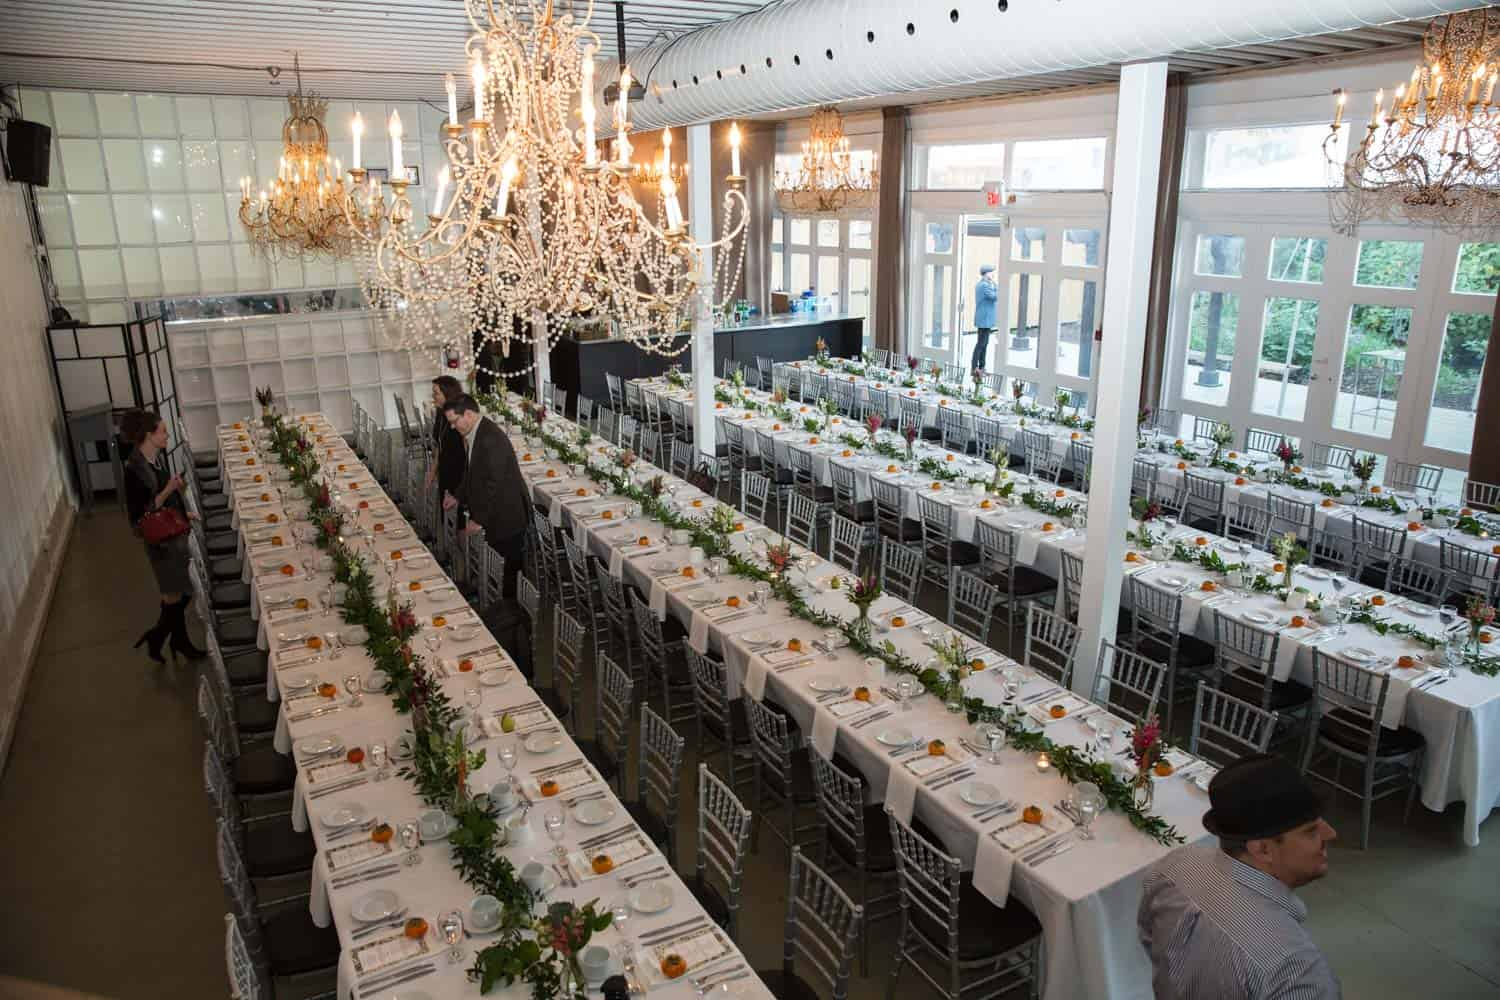 long tables set with multiple chairs and chandeliers hanging above